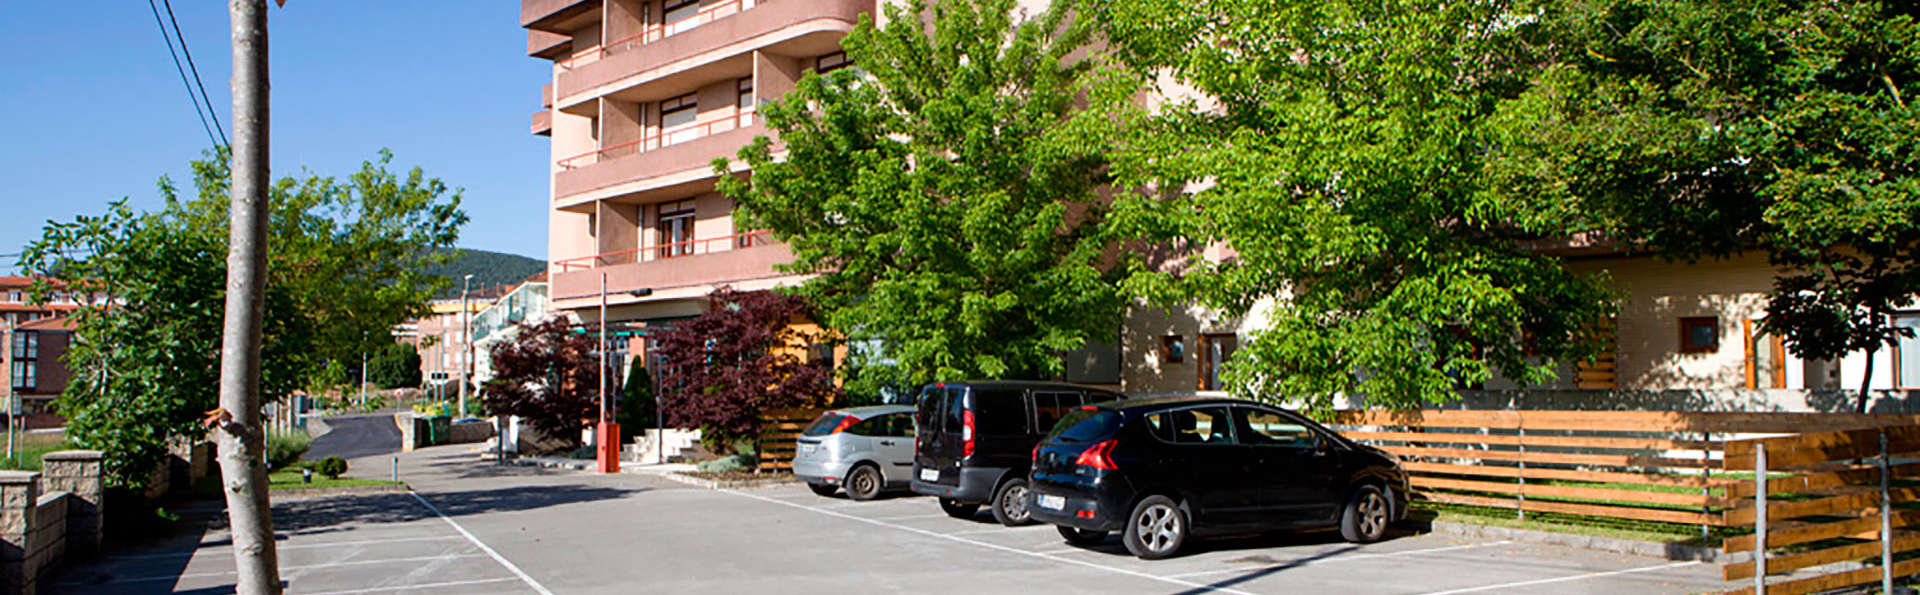 Hotel Los Arces - edit_parking.jpg